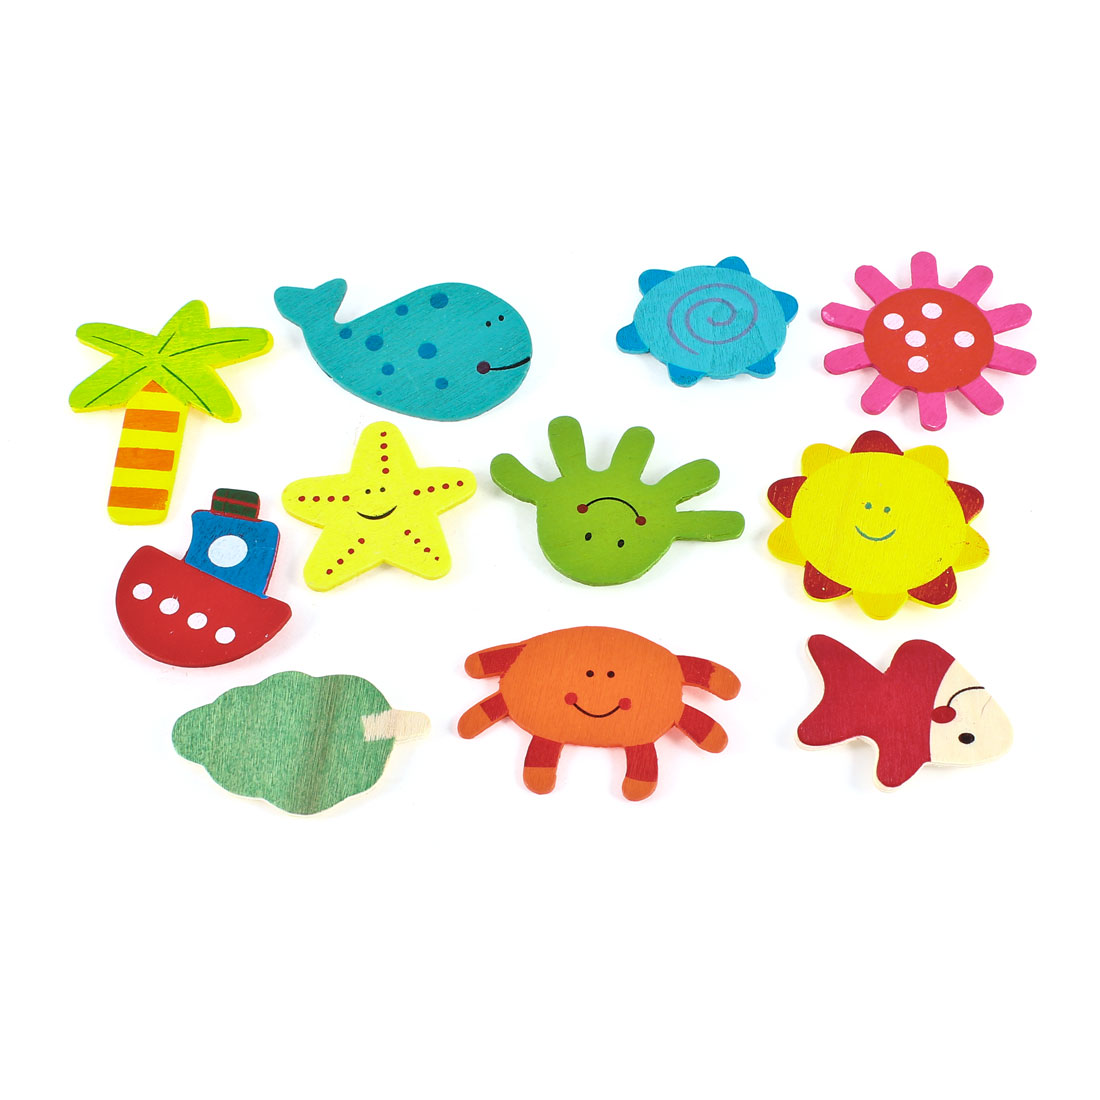 Multicolor Fridge Refrigerator Door Decor Sun Tree Fish Magnet Sticker 11 Pcs